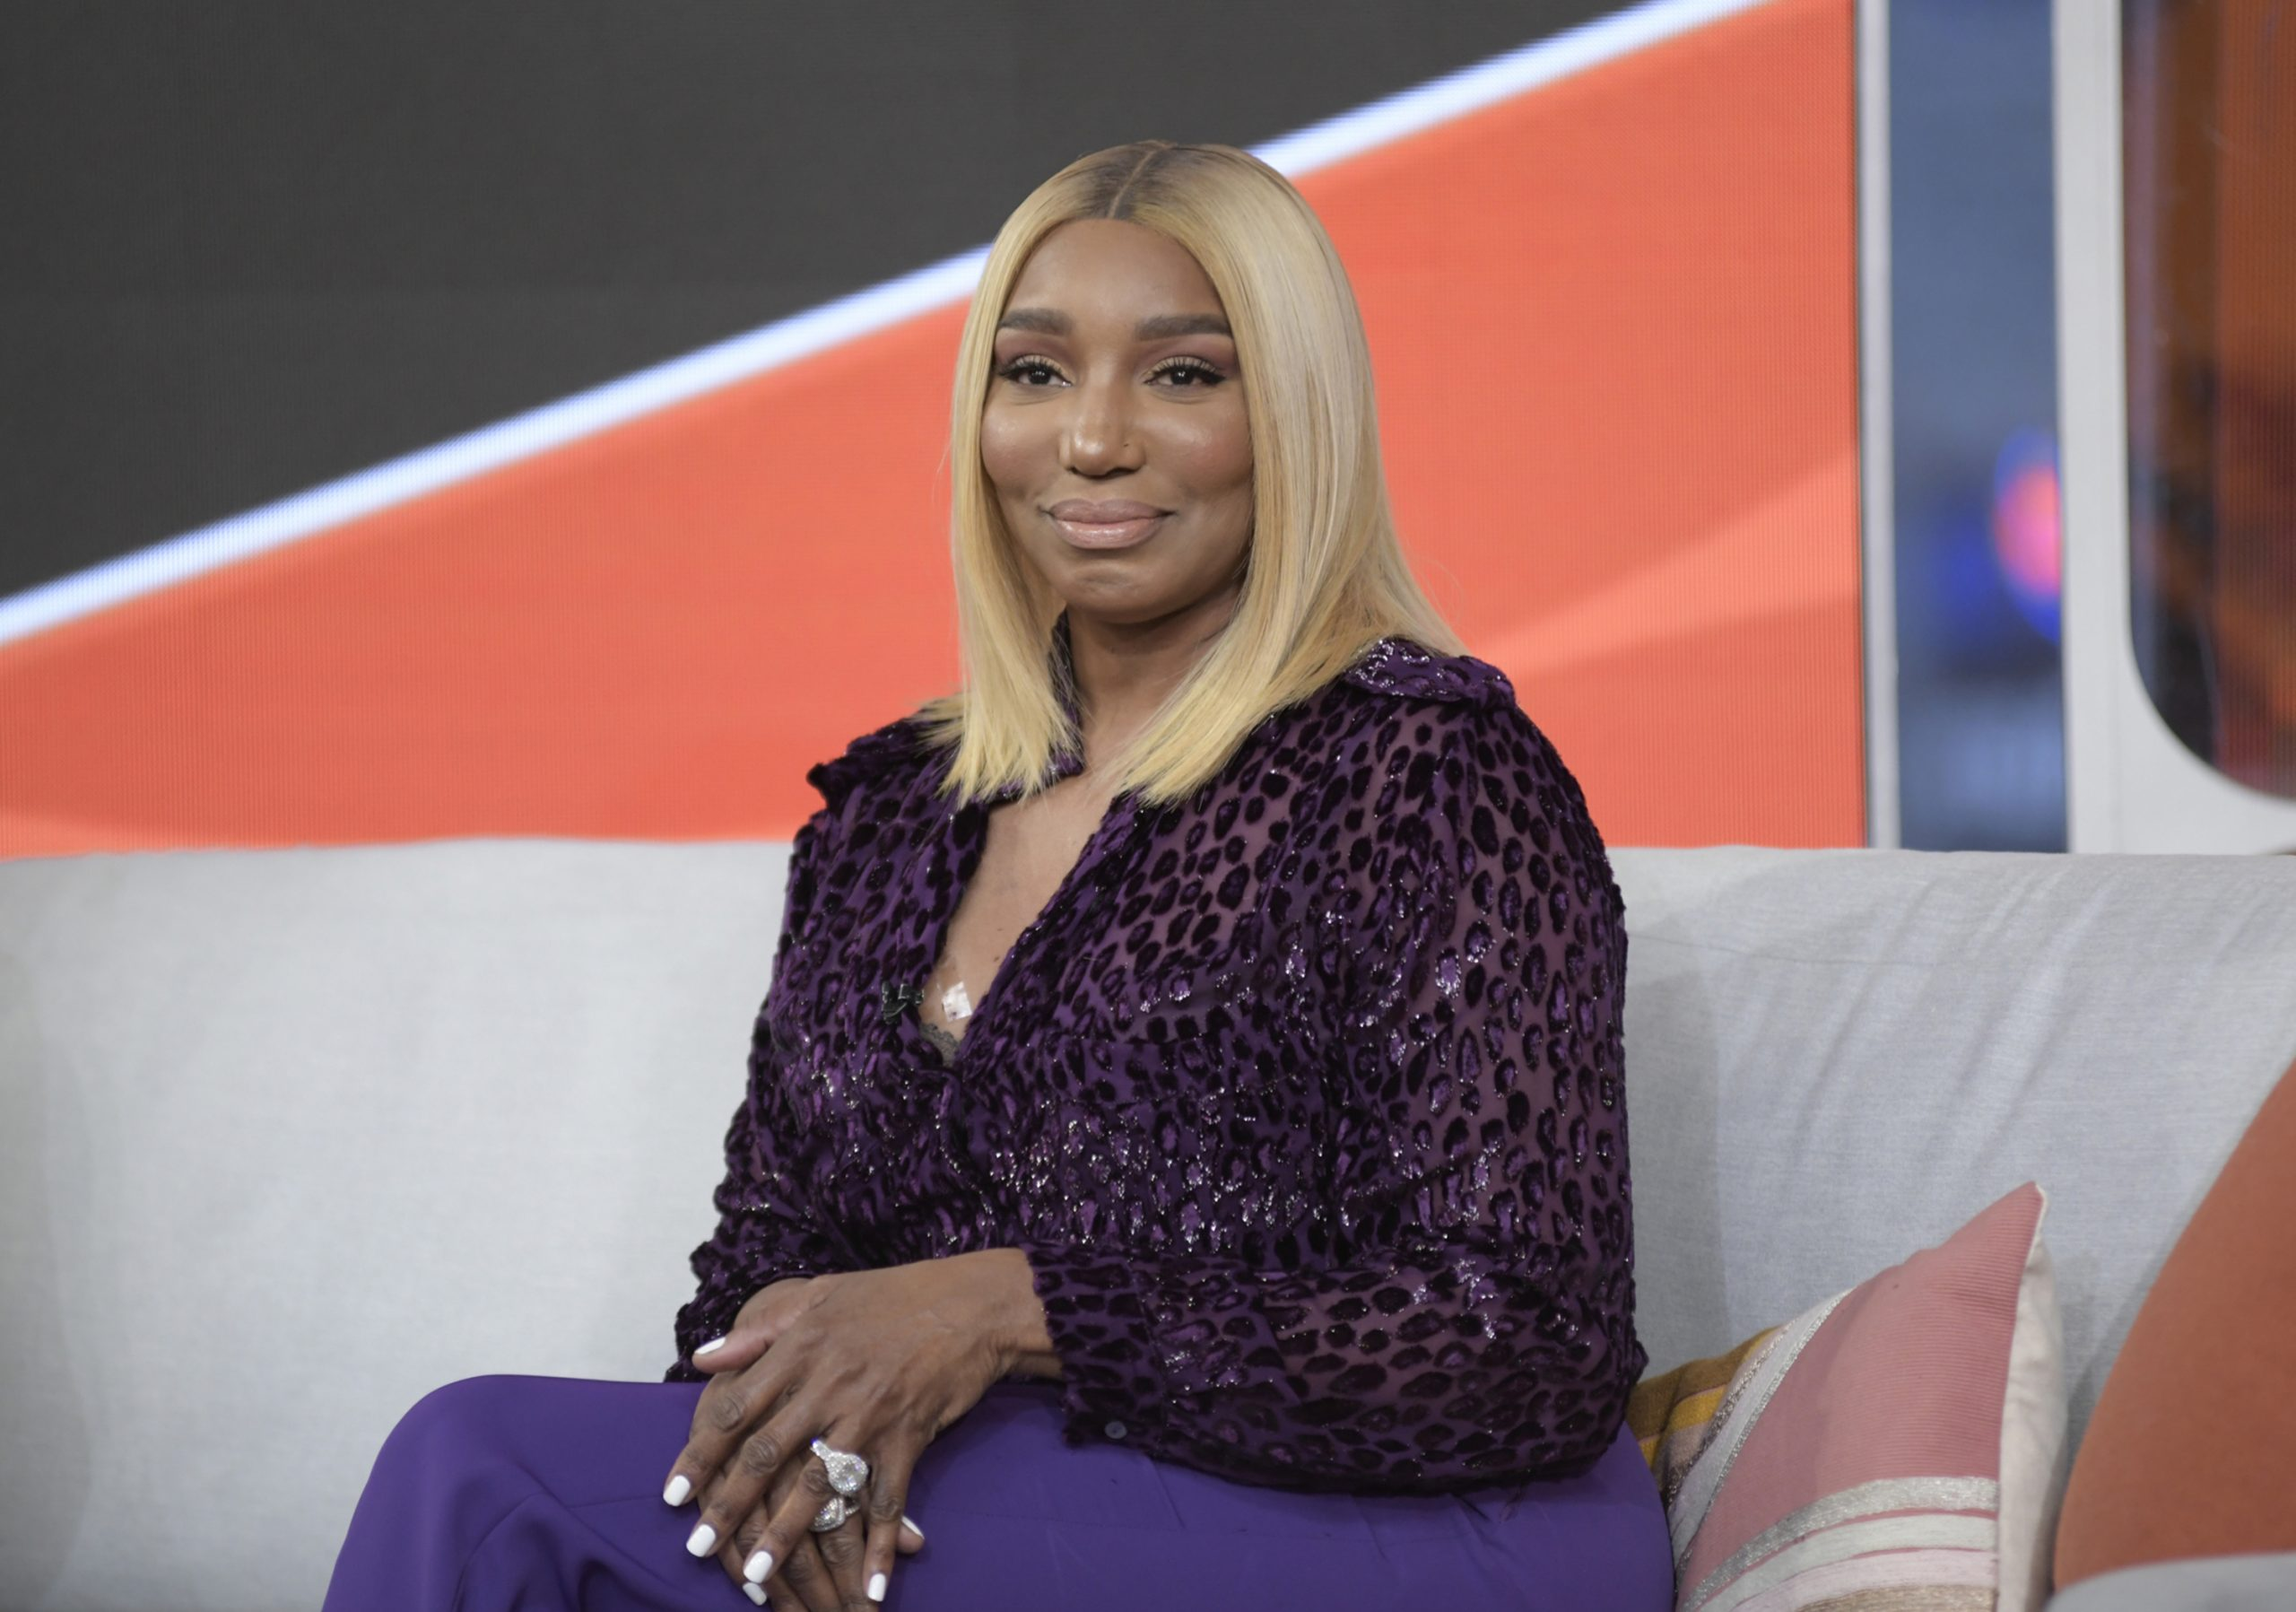 In Case You Missed It: NeNe Leakes Co-Host GMA3 Strahan, Sara, Keke Show